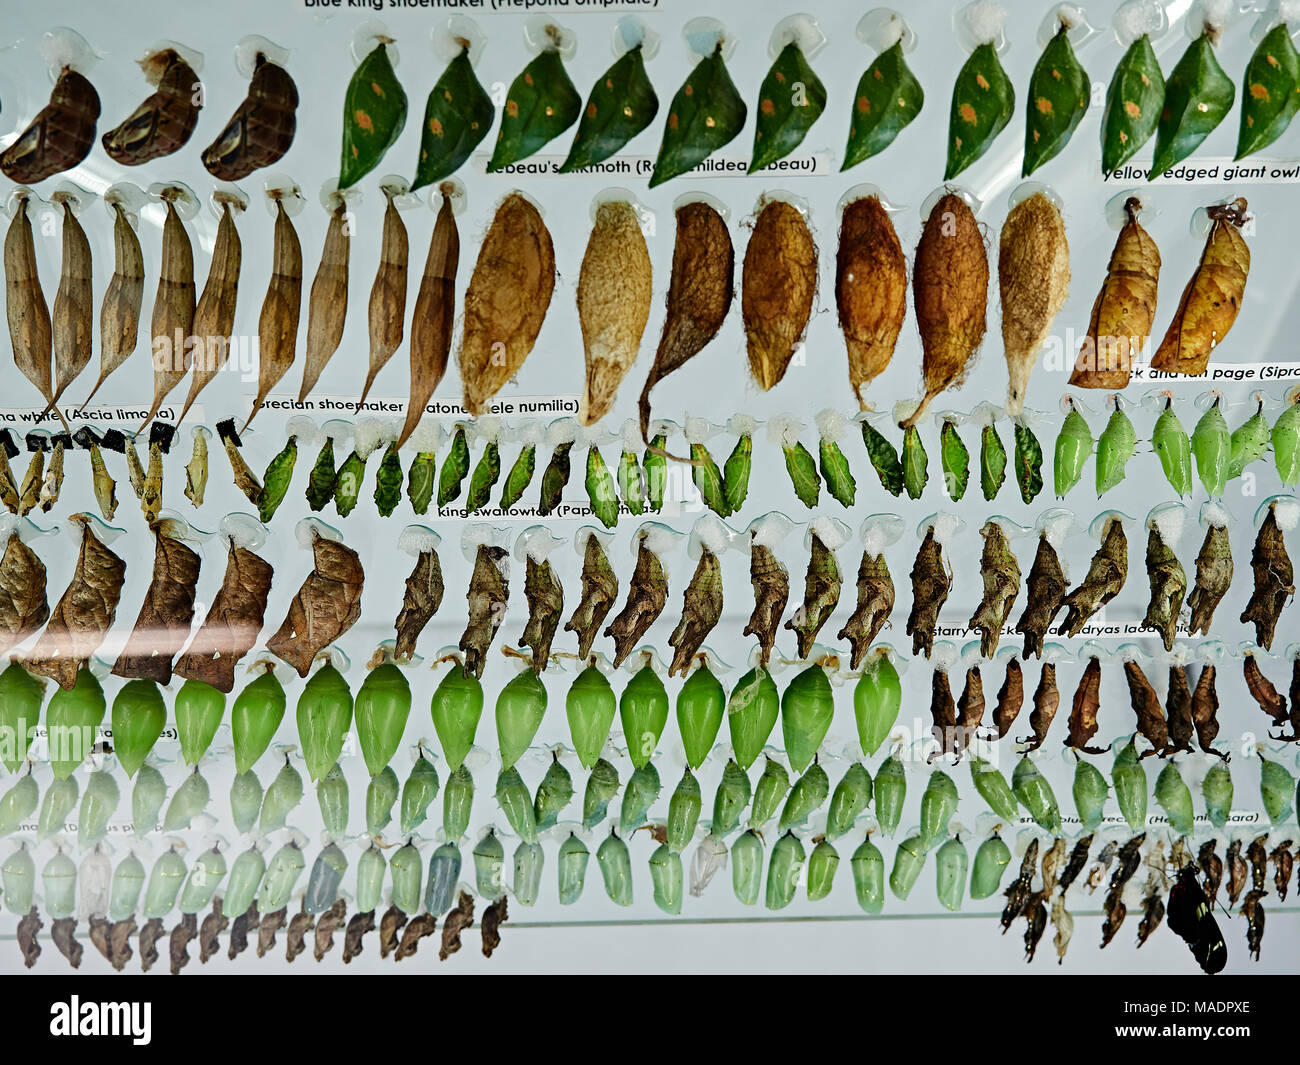 Display of butterfly chrysalides or pupa in the metamorphosis enclosure at the Callaway Gardens Butterfly House, Pine Mountain Georgia, USA. - Stock Image